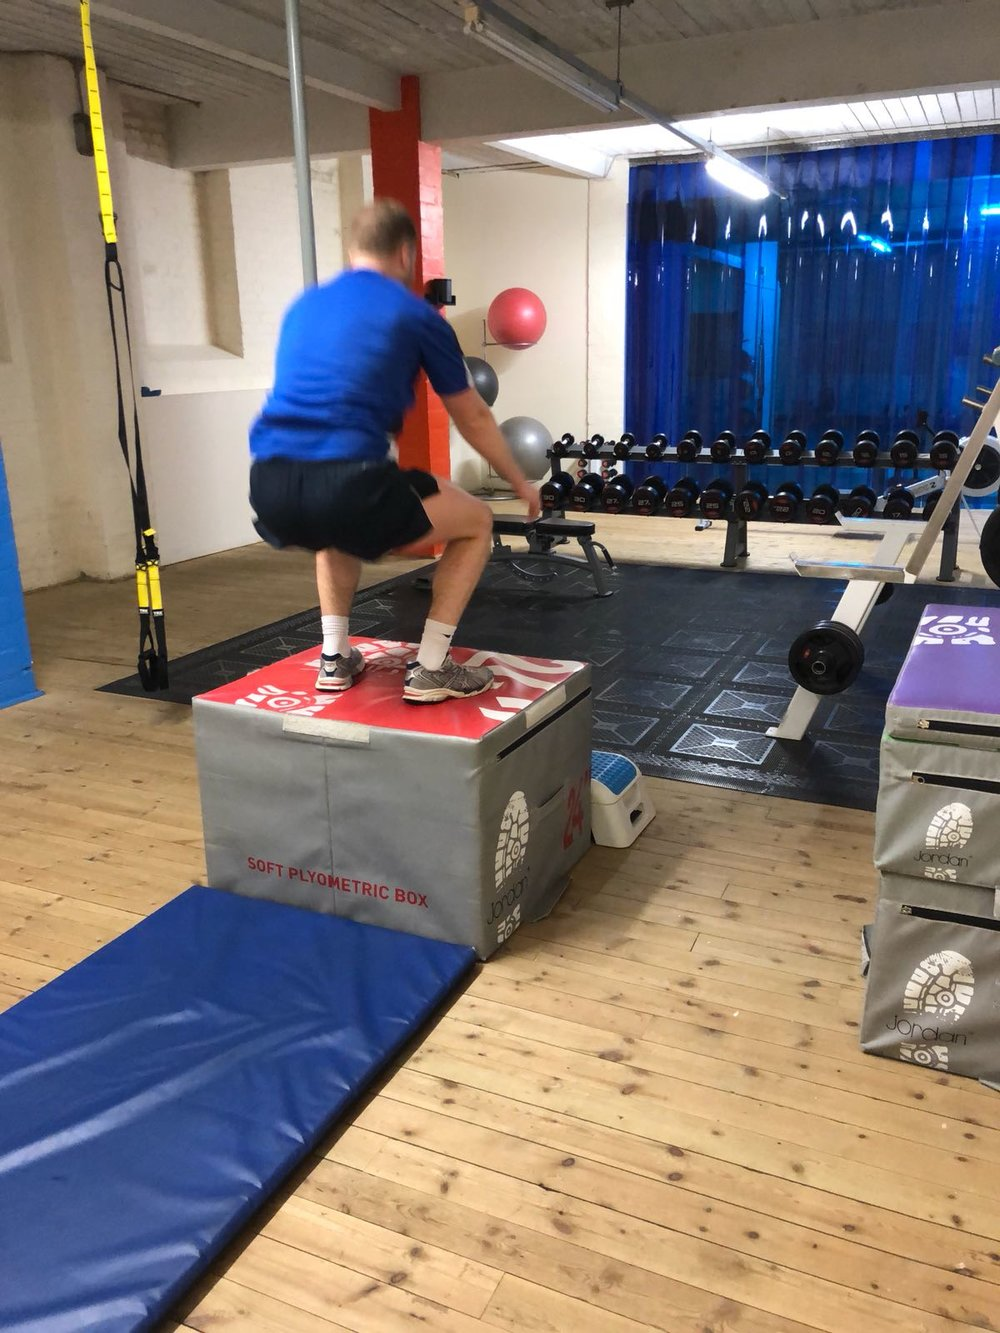 Tom then sinks into a squat from landing showing control and allowing his muscles to stay under tension longer